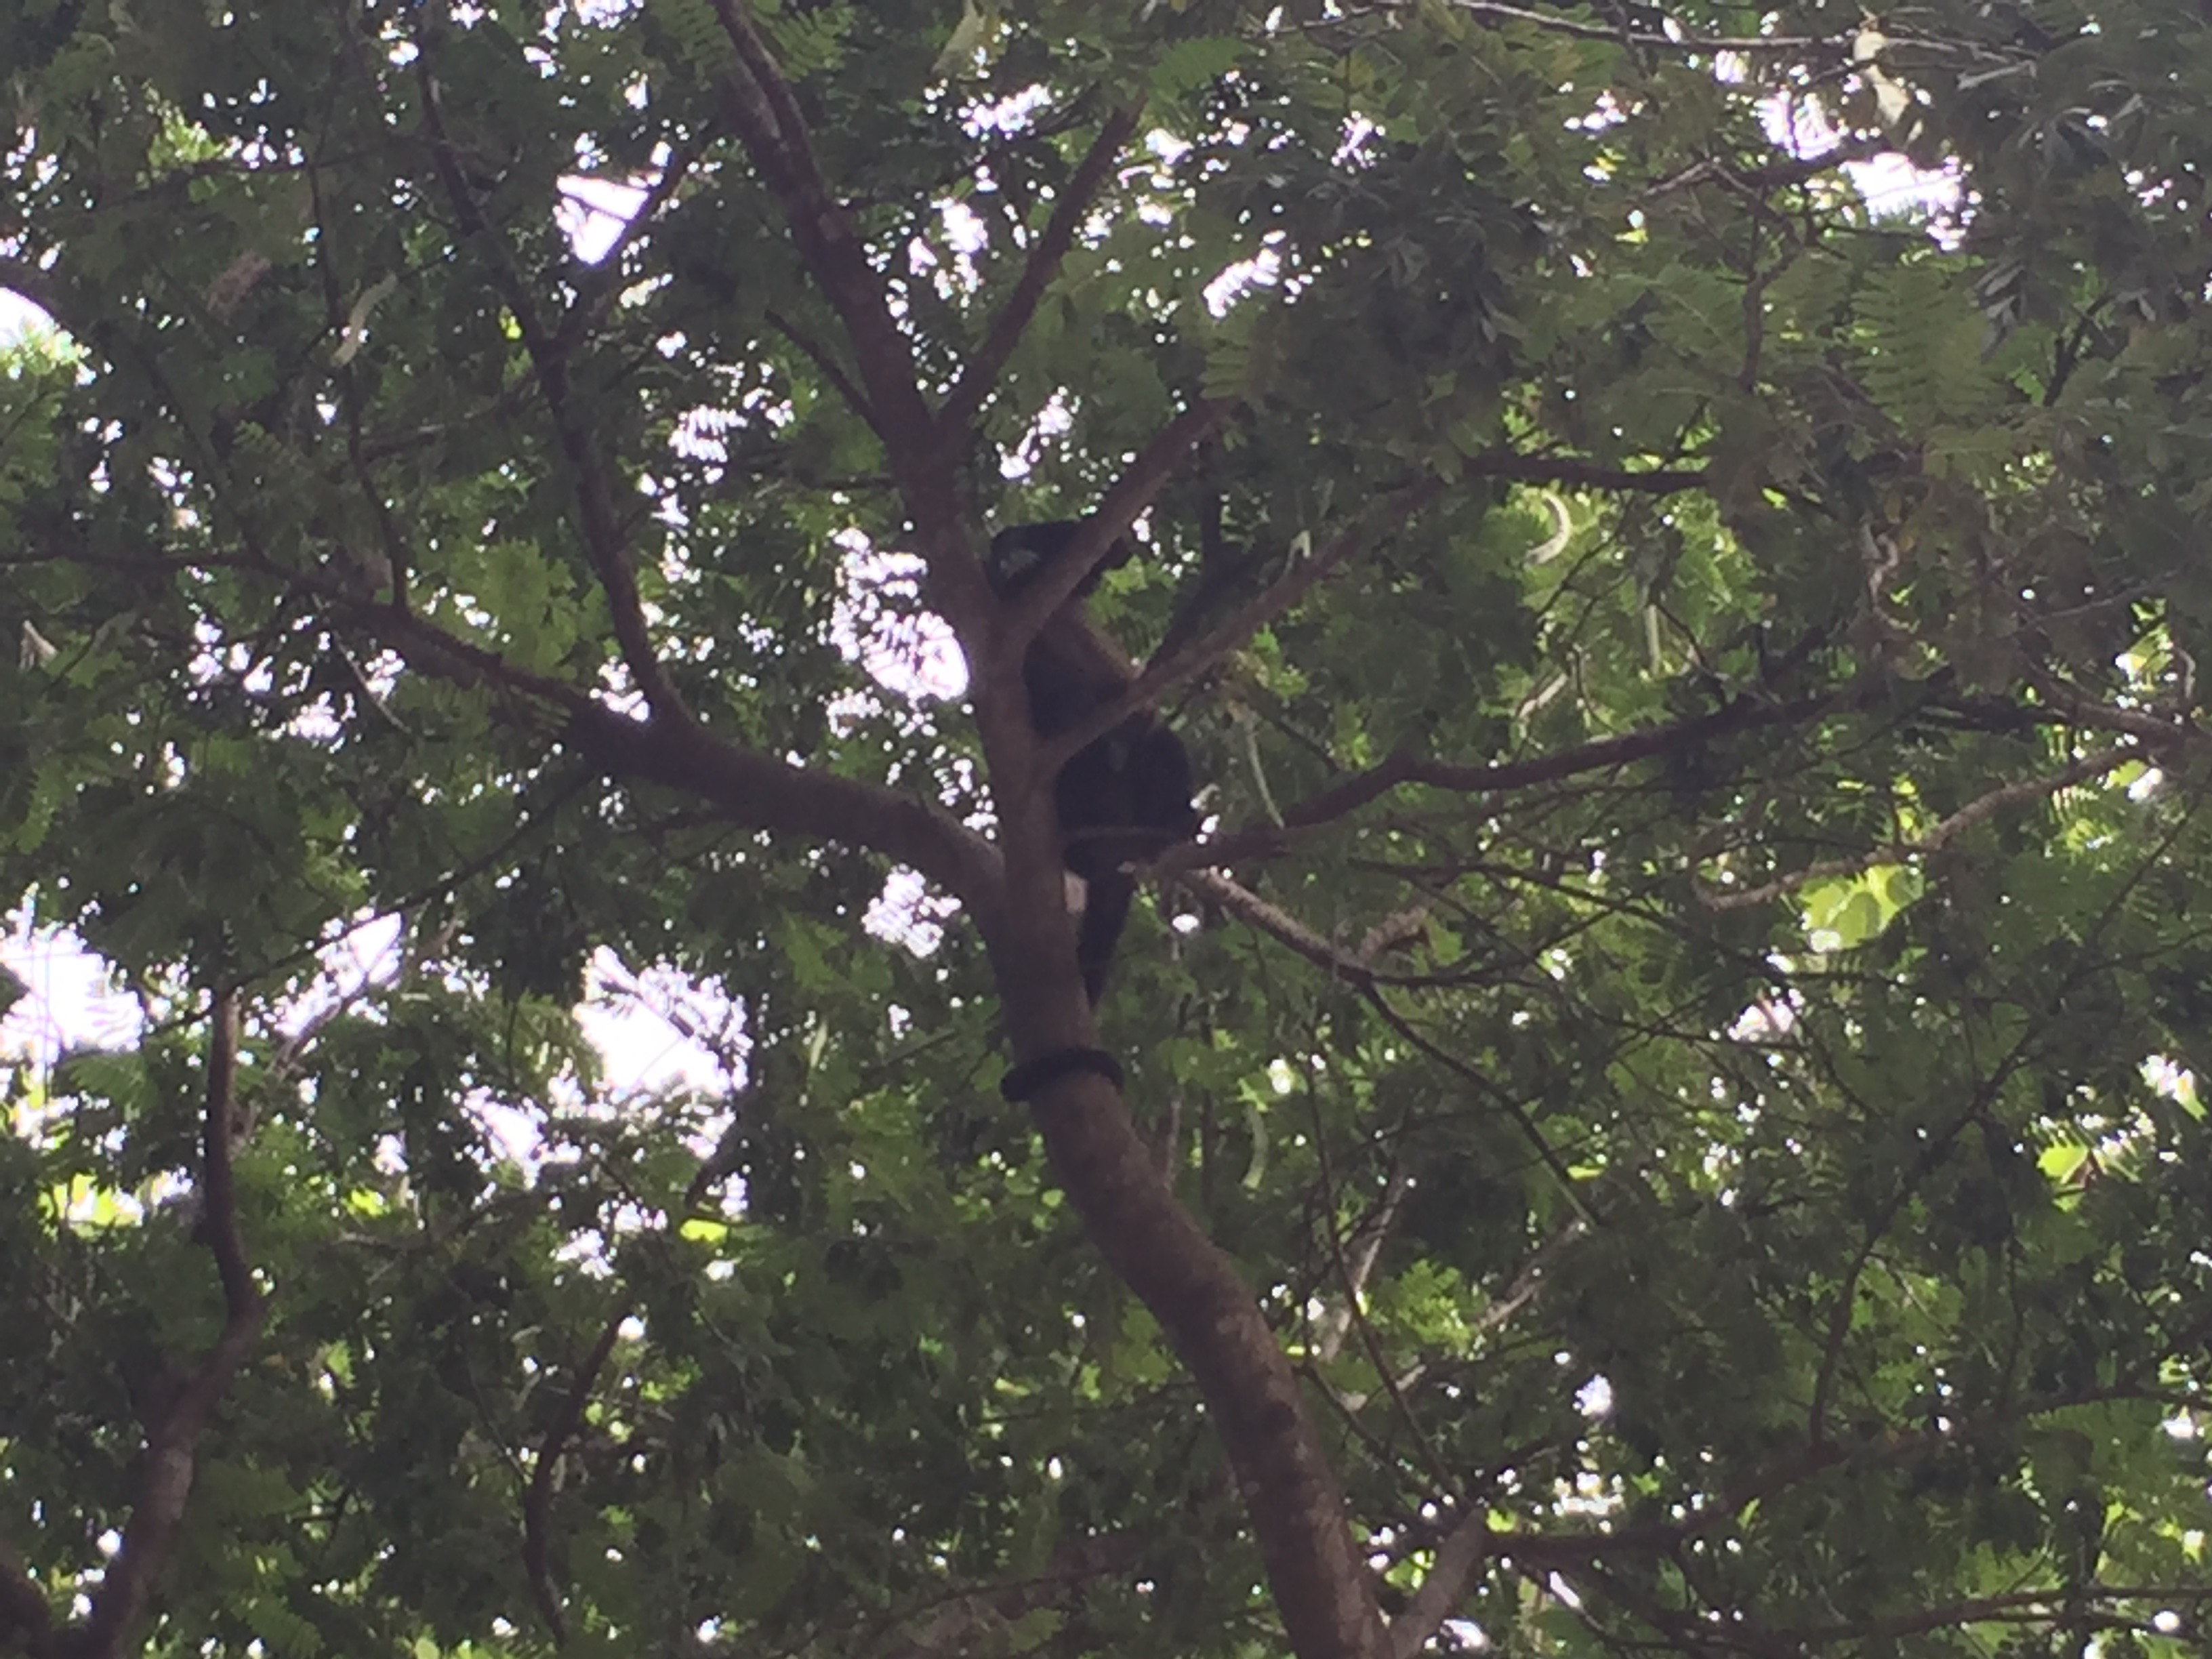 A monkey climbs in a tree in Nosara, Costa Rica.